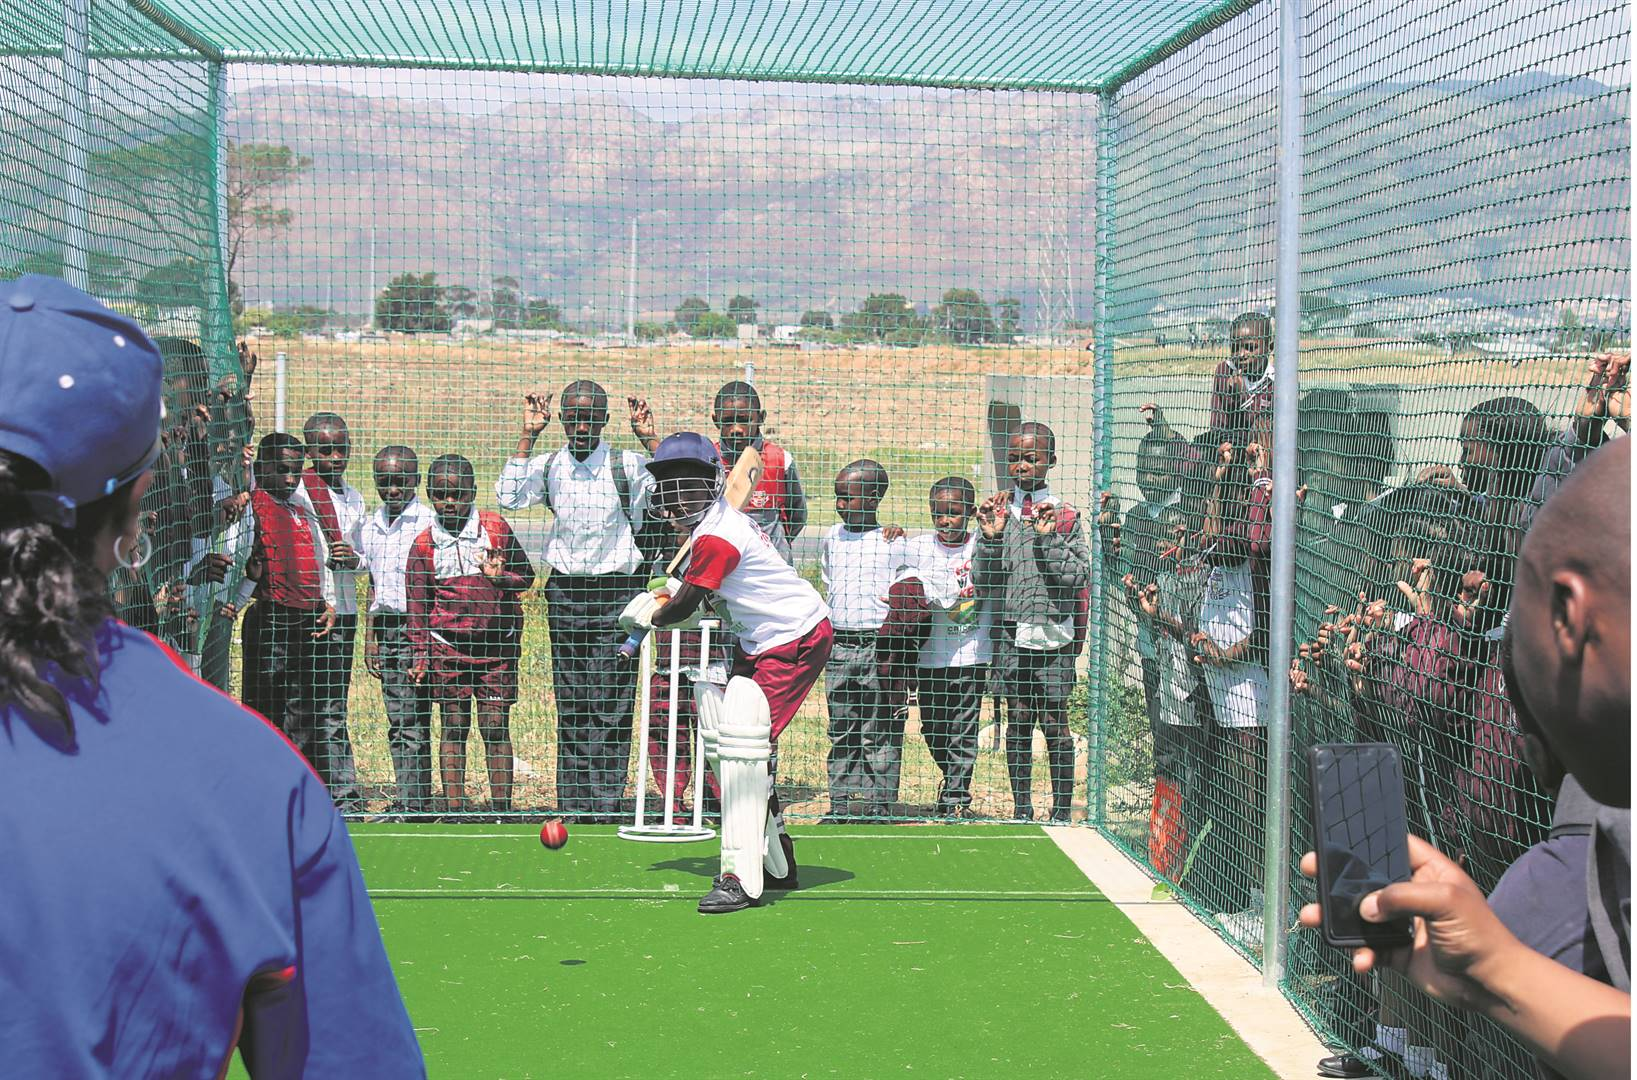 Emihle Matiso (11), a Grade 6 learner at Solomon Qatyana Primary School, swings at a delivery in the newly constructed practice nets at the school. PHOTO: Mzwanele Mkalipi